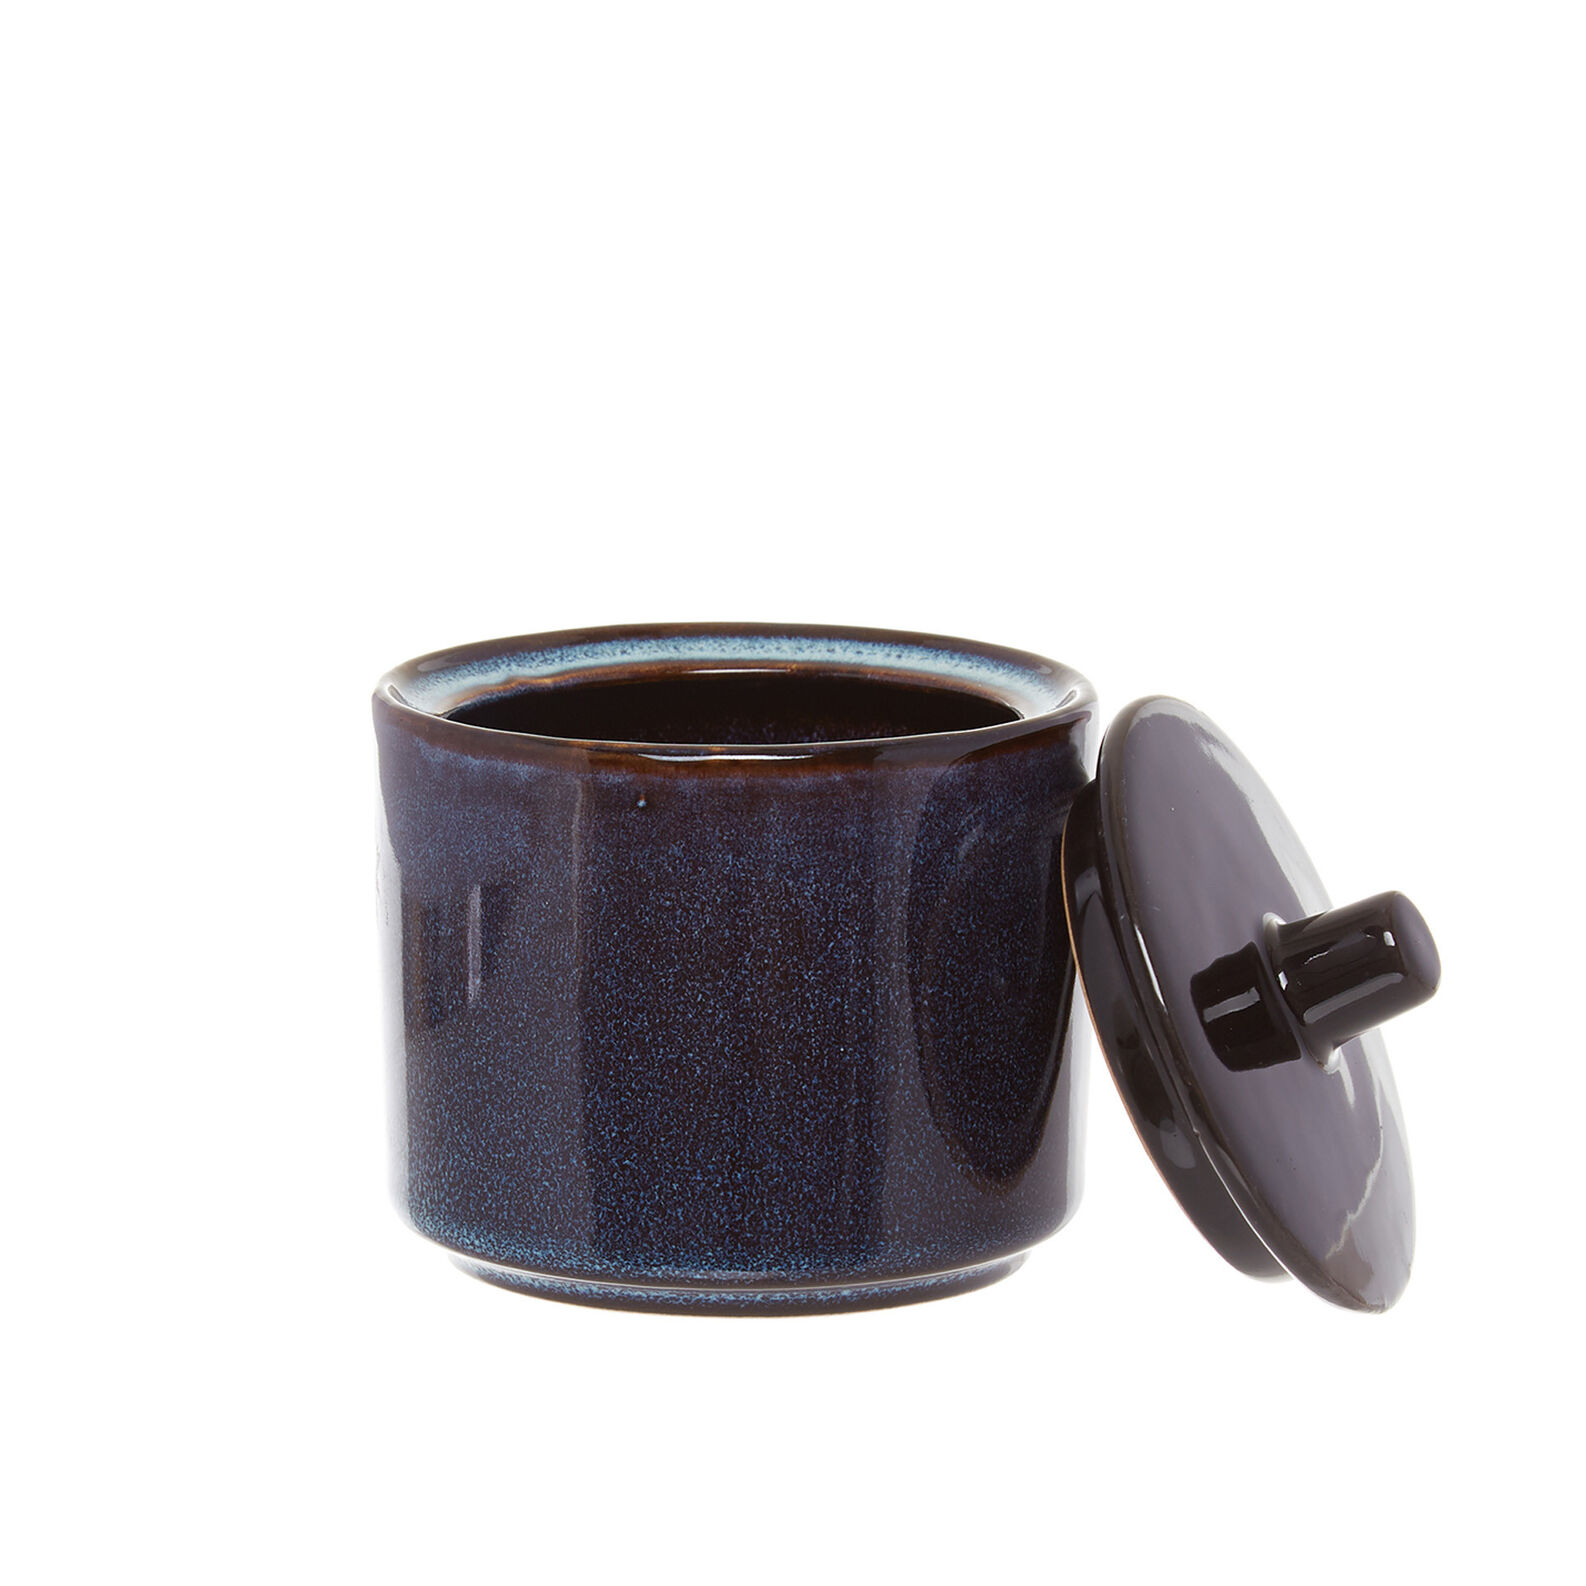 Space sugar bowl in stoneware with reactive glazes